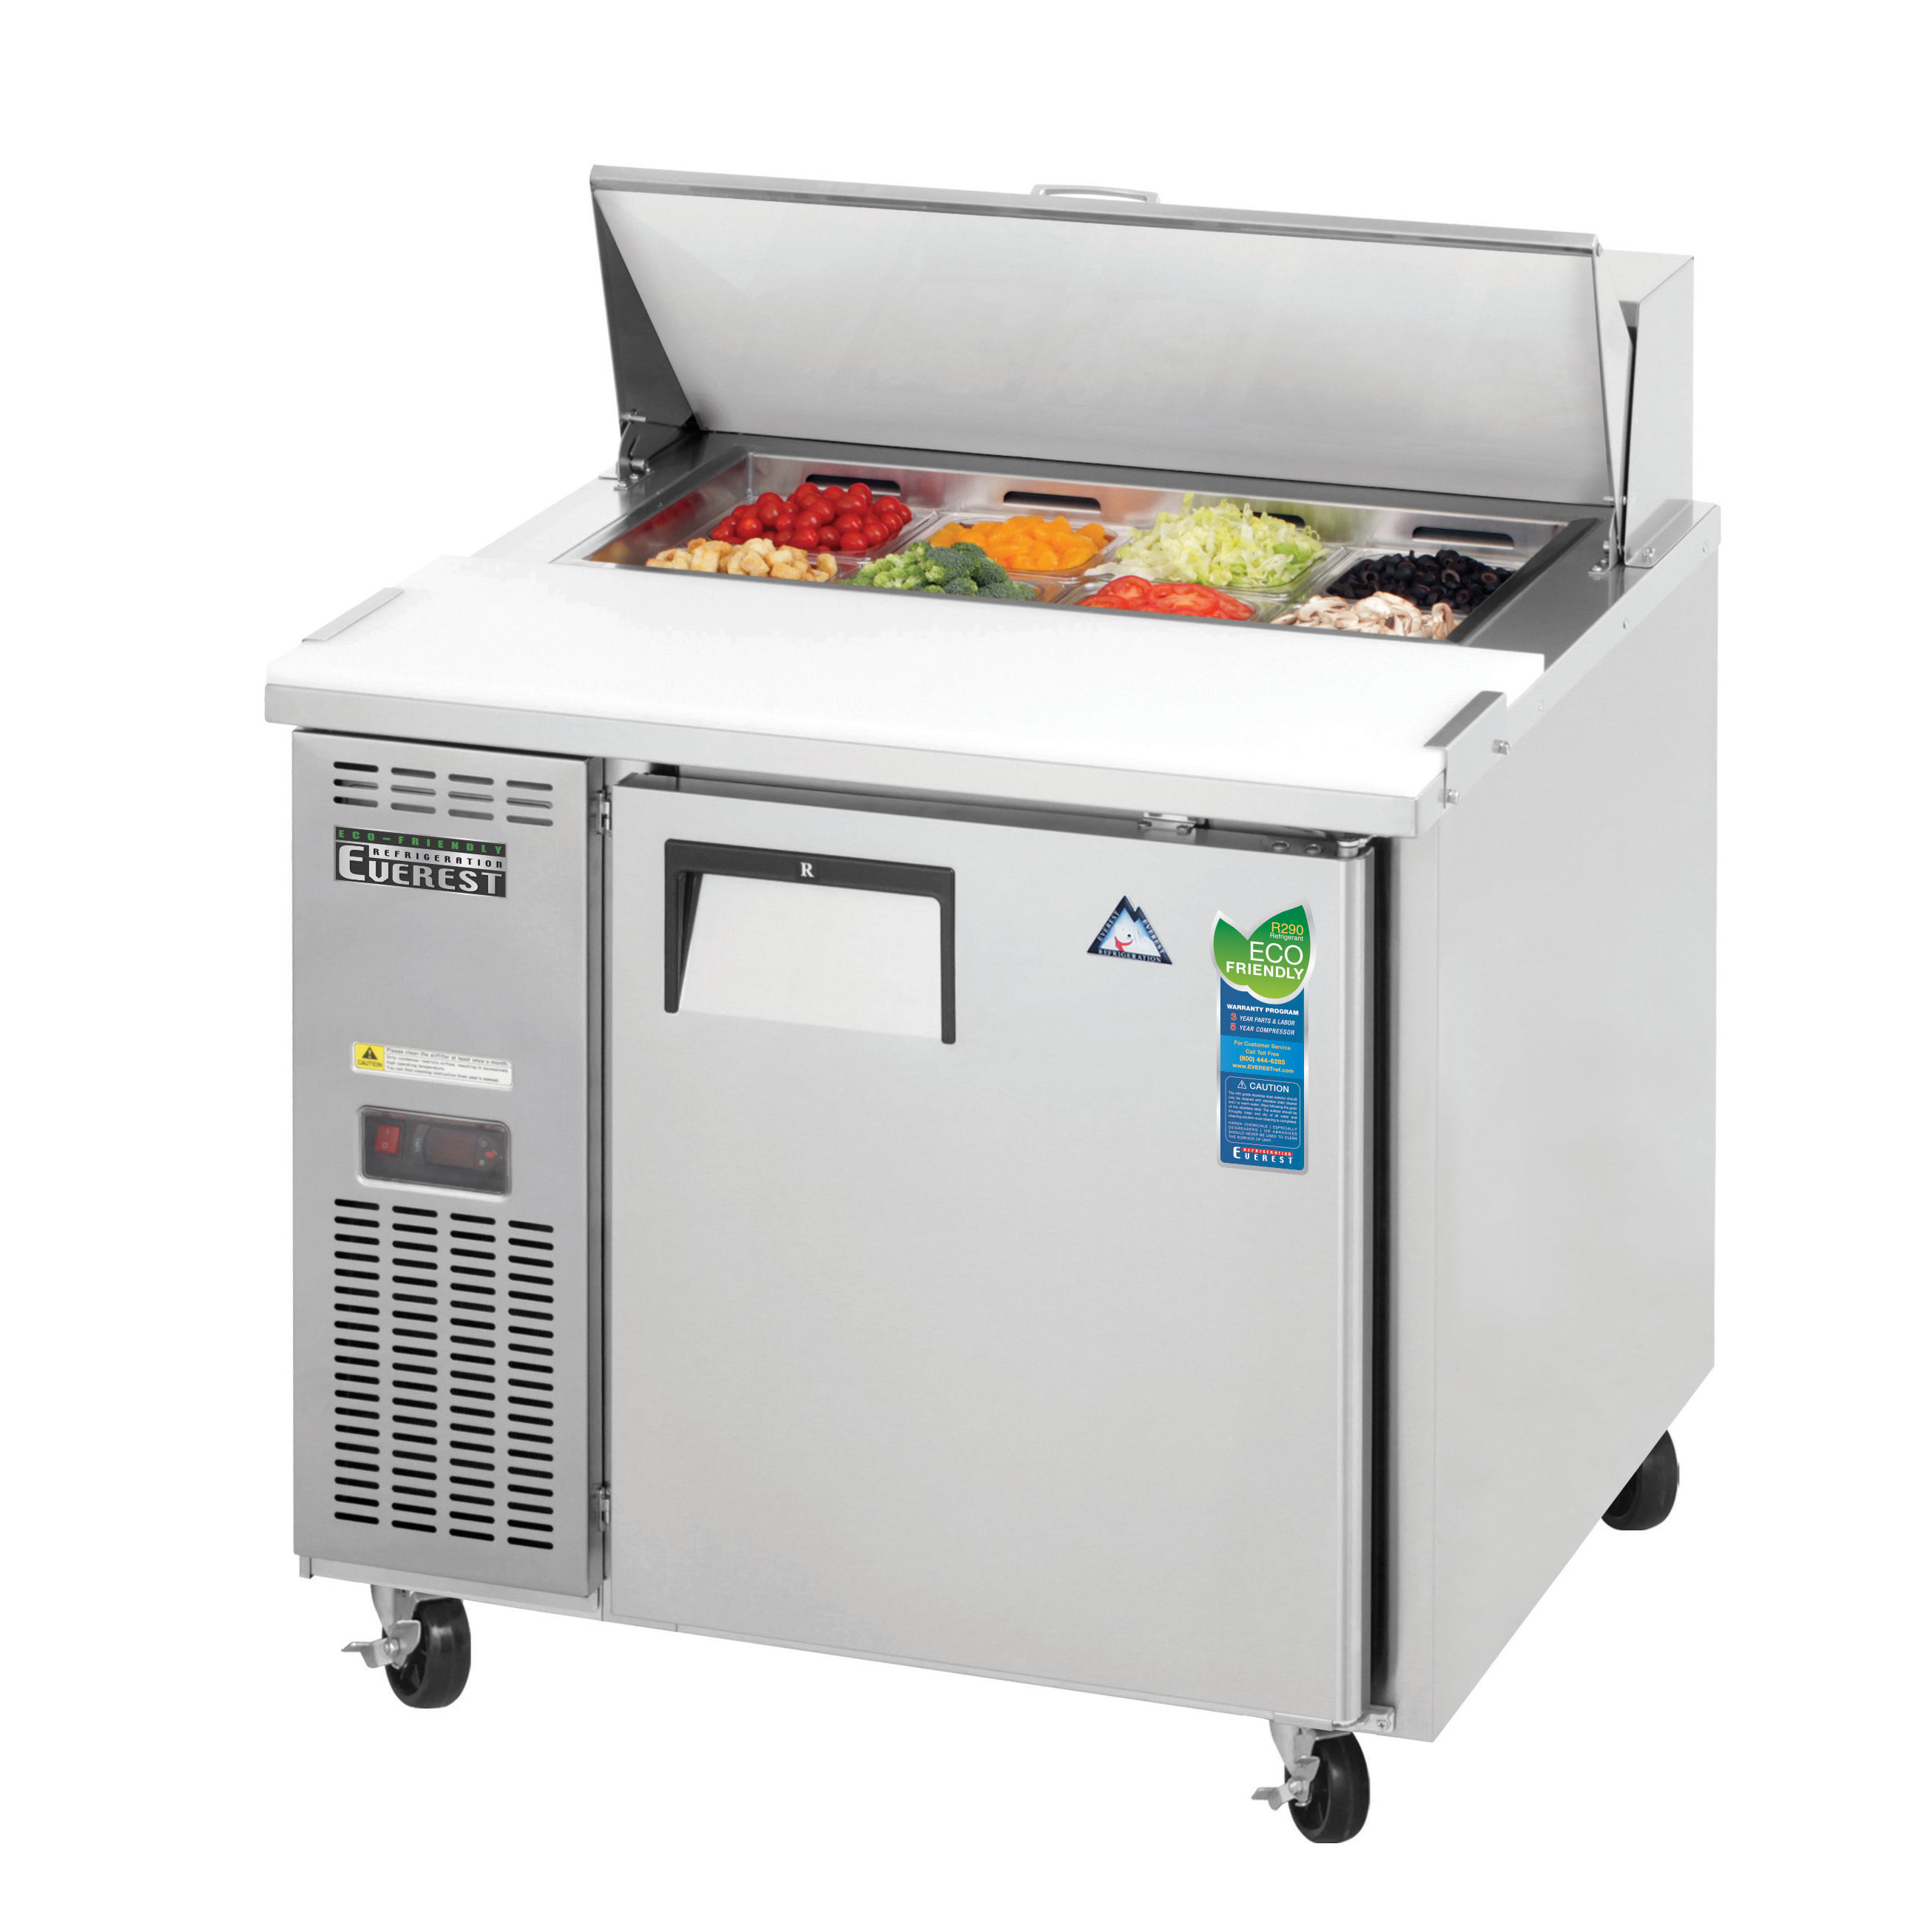 Everest Refrigeration EPR1-24 refrigerated counter, sandwich / salad unit